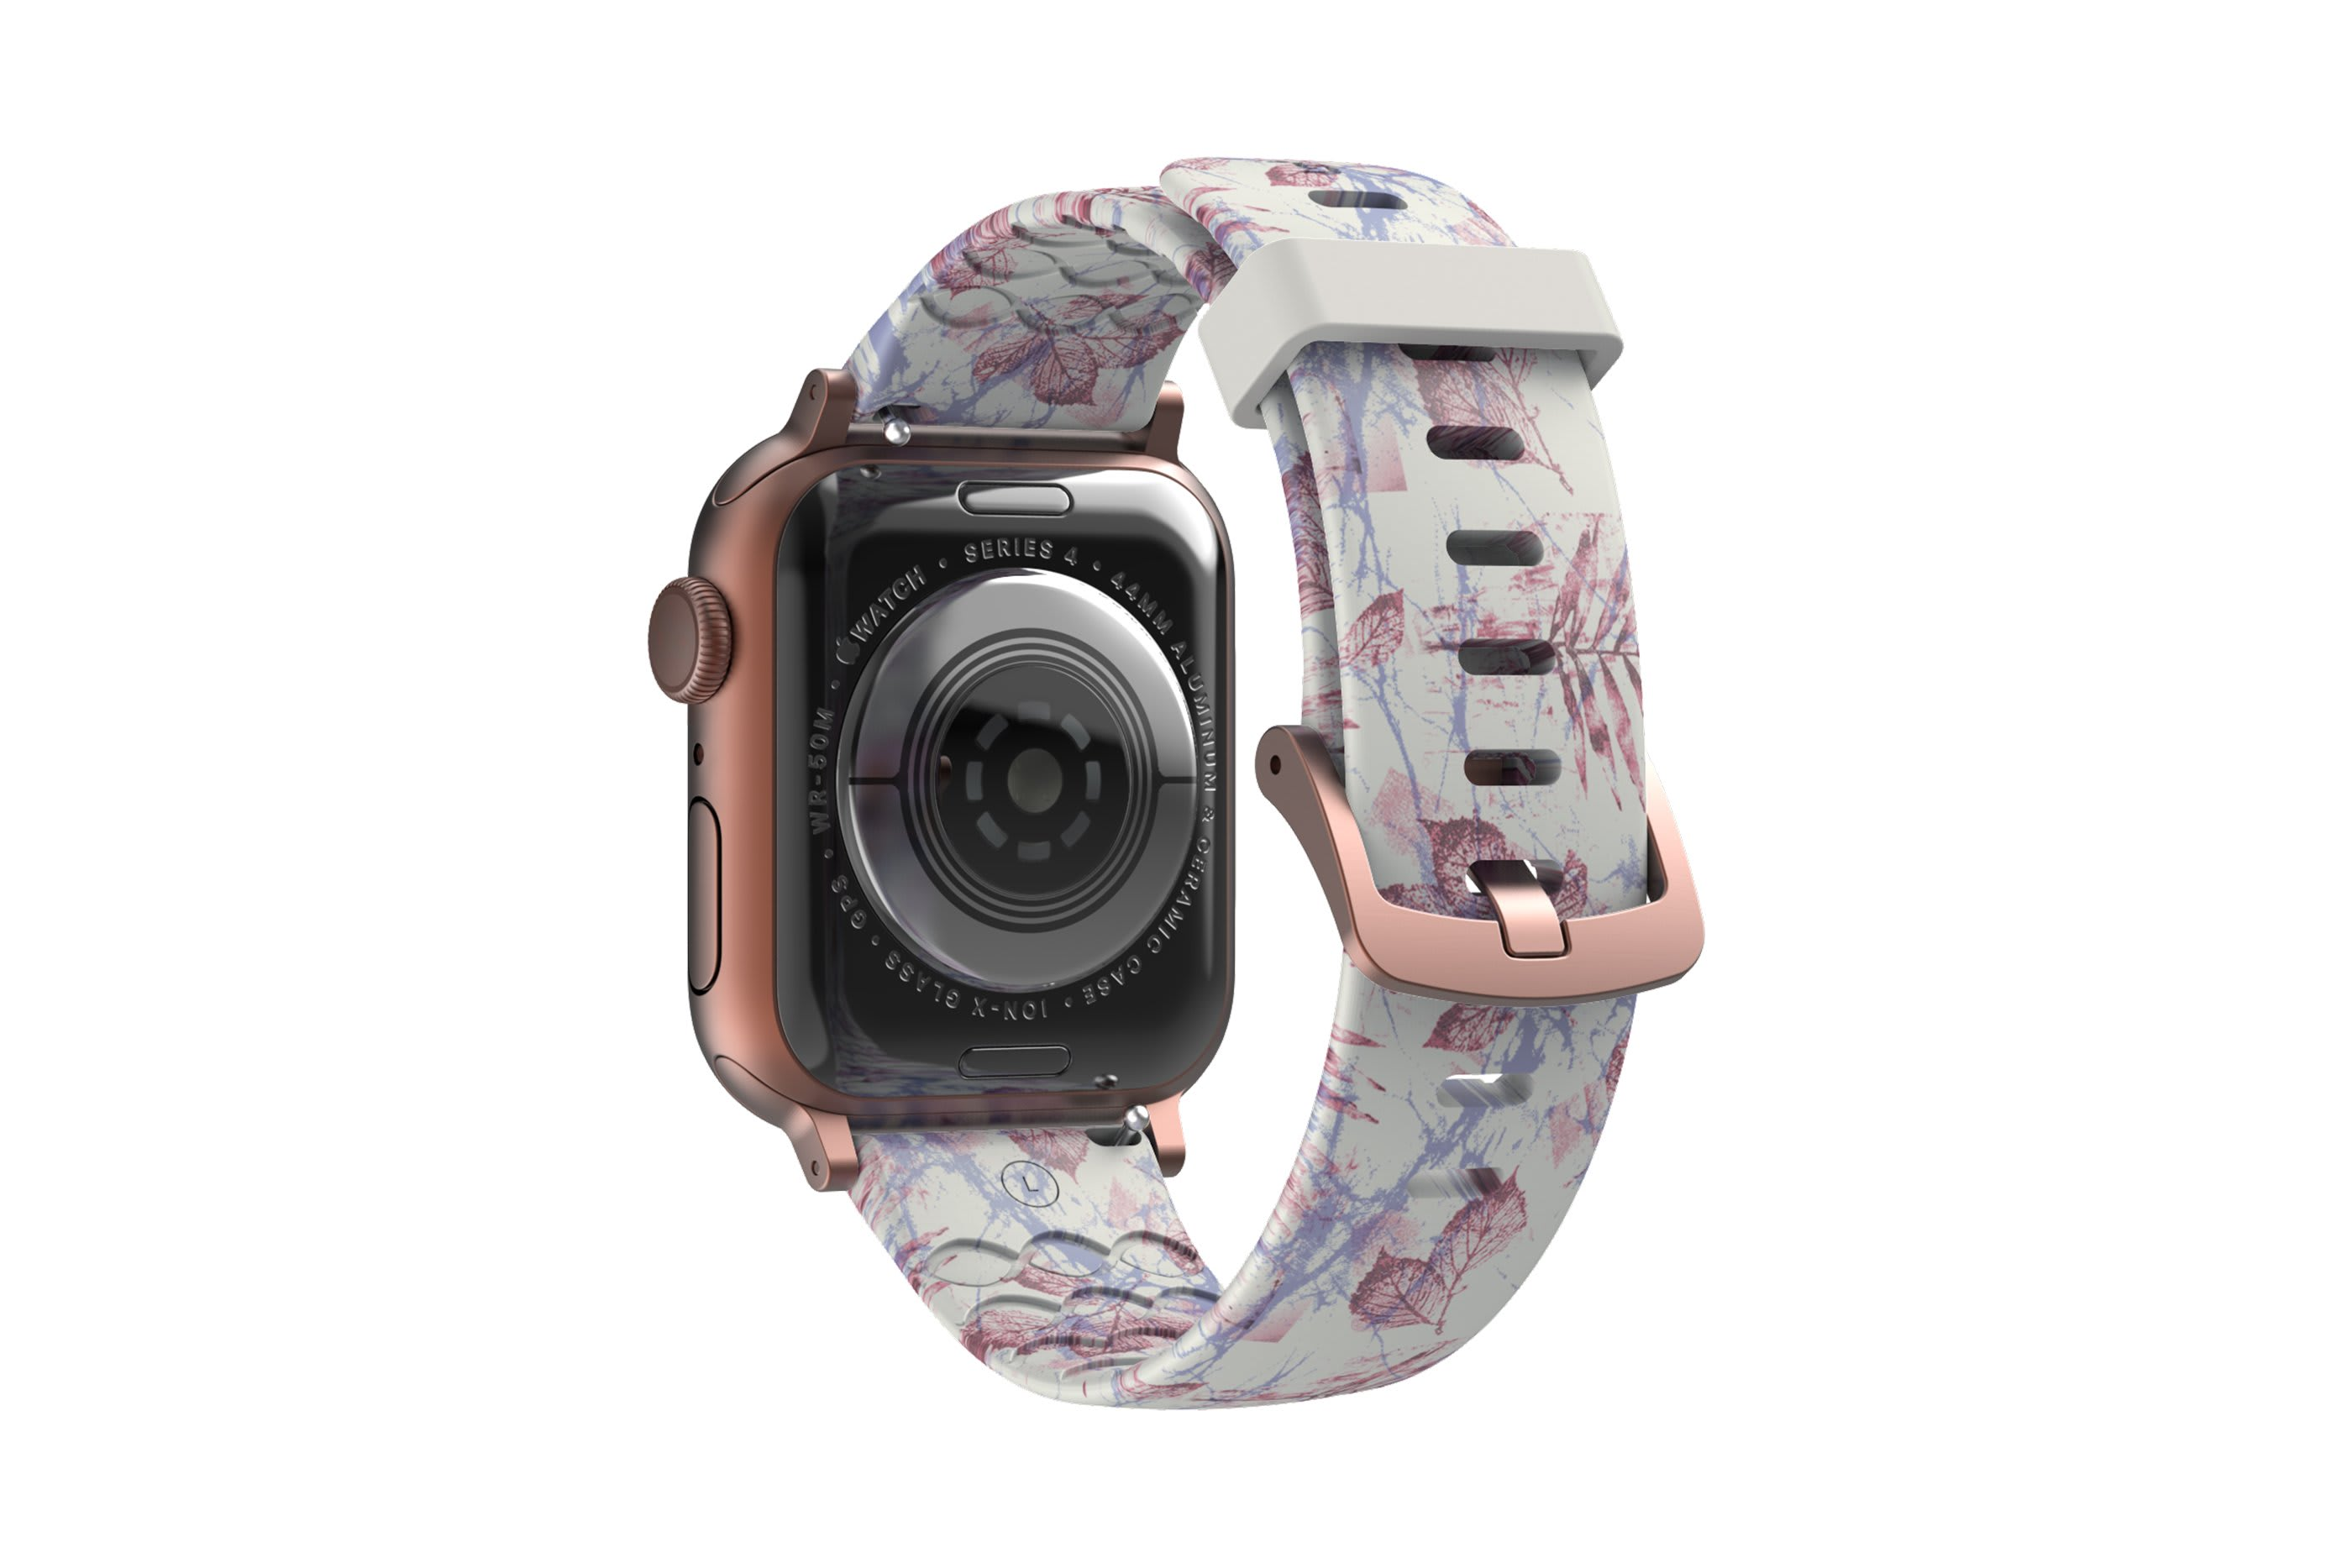 Breeze Apple Watch Band with rose gold hardware viewed from rear